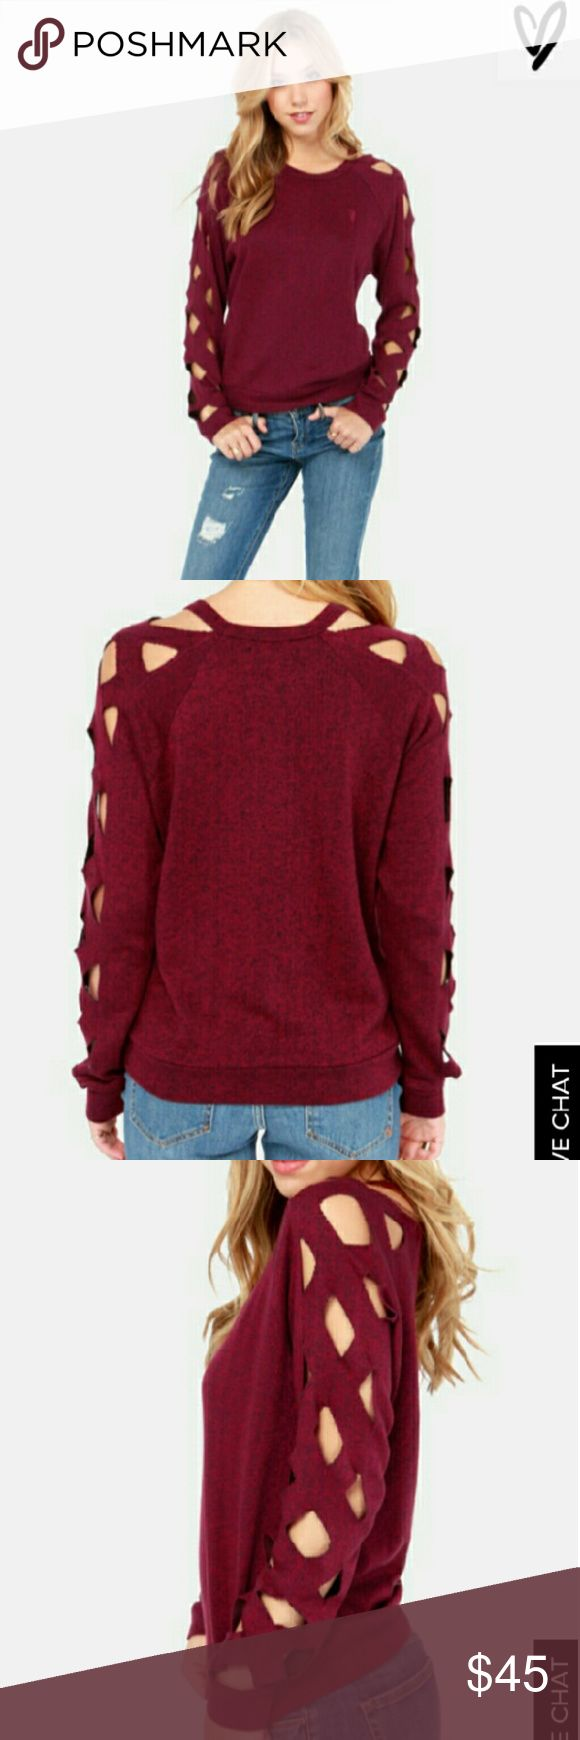 Obey Propaganda Cut Out Gate keeper sweater! Holding the key to the most stylish outfits this season is the Obey Gate Keeper Tibetan Red Cutout Sweater!  Wine red and light black yarn form a fine marl knit constructing this light weight pullover sweatshirt with diamond cutout details on top of the long sleeves that add a bit of edge. Embroidered logo at front. Unlined. Made from 55% Cotton, 45% Polyester. Hand Wash Cold. Obey propaganda  Tops Sweatshirts & Hoodies